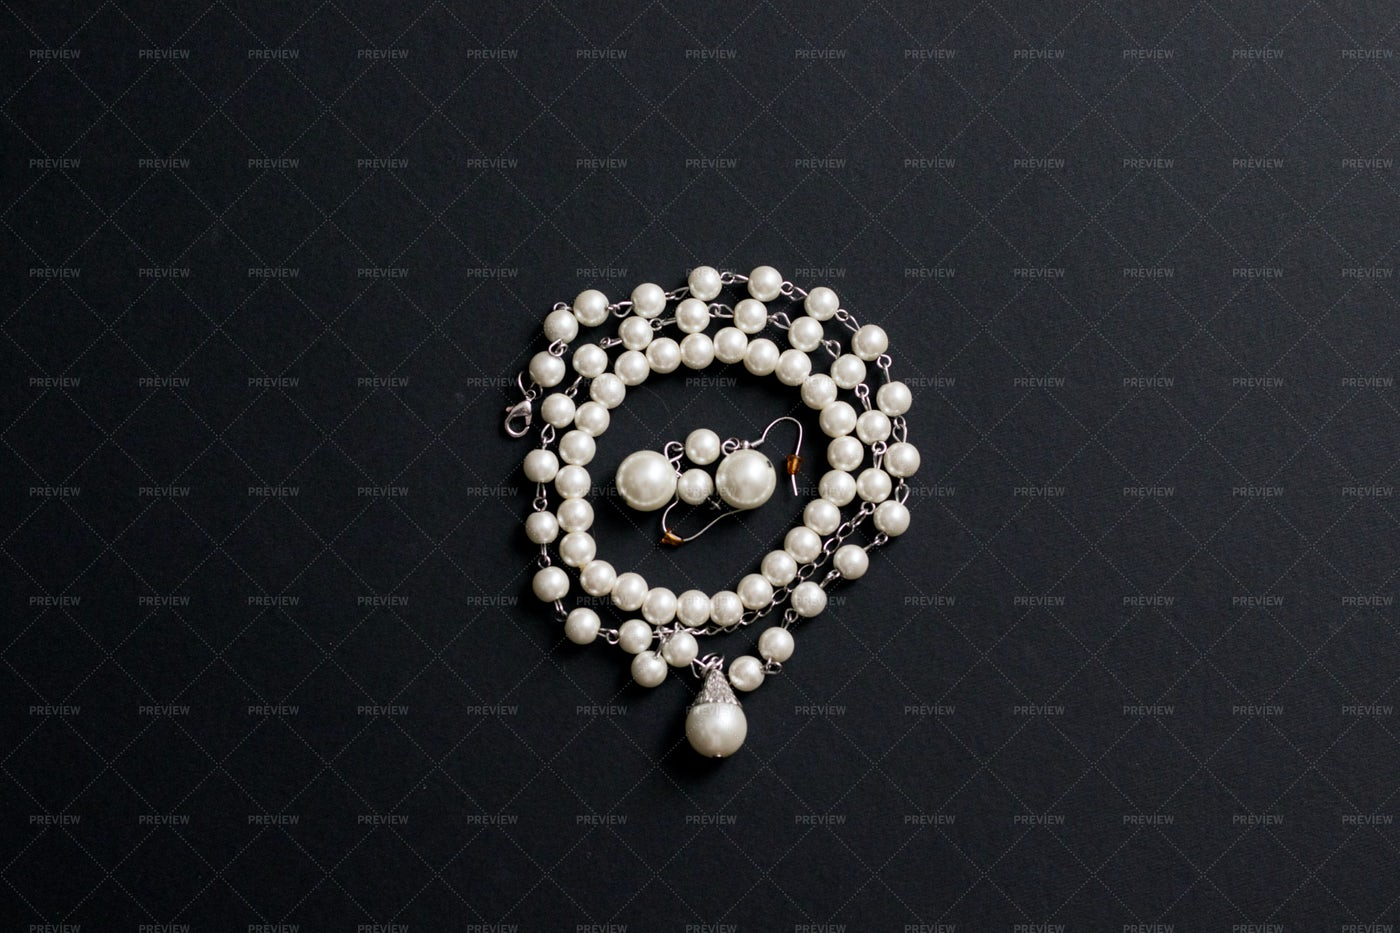 Pearl Necklace Black Background: Stock Photos